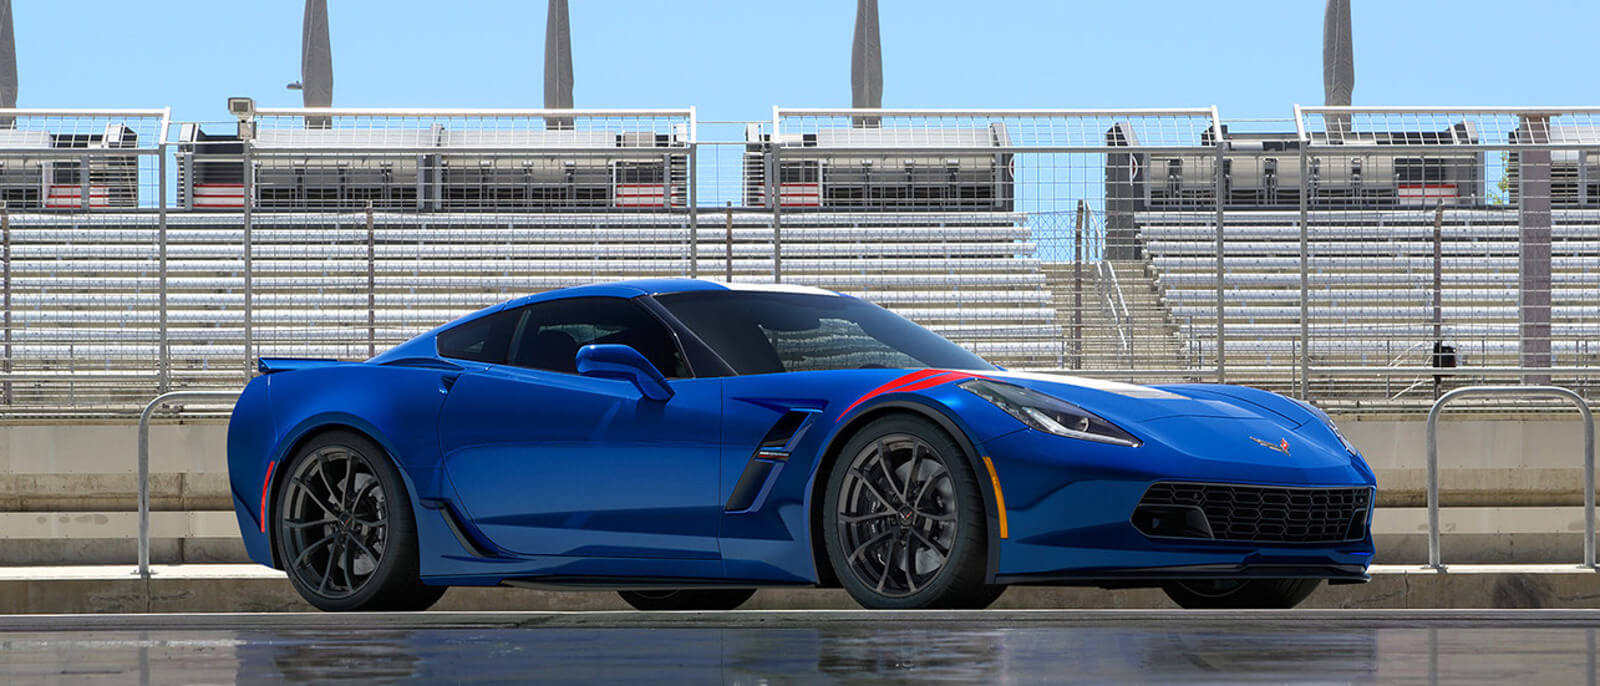 2017 Chevy Corvette Grand Sport: Coming Soon to Homewood on